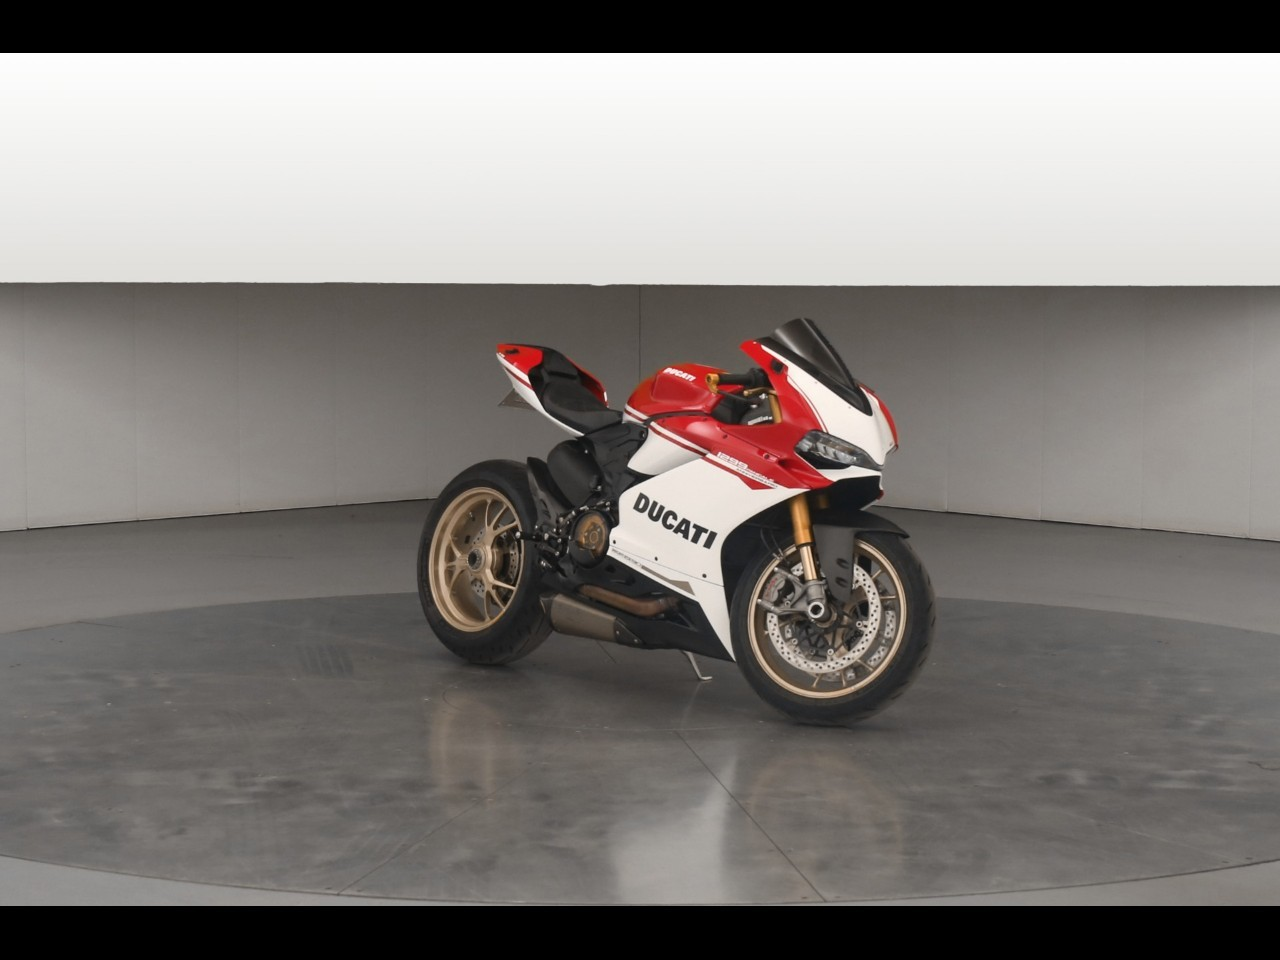 Michigan - Sportbike Motorcycles For Sale - Cycle Trader